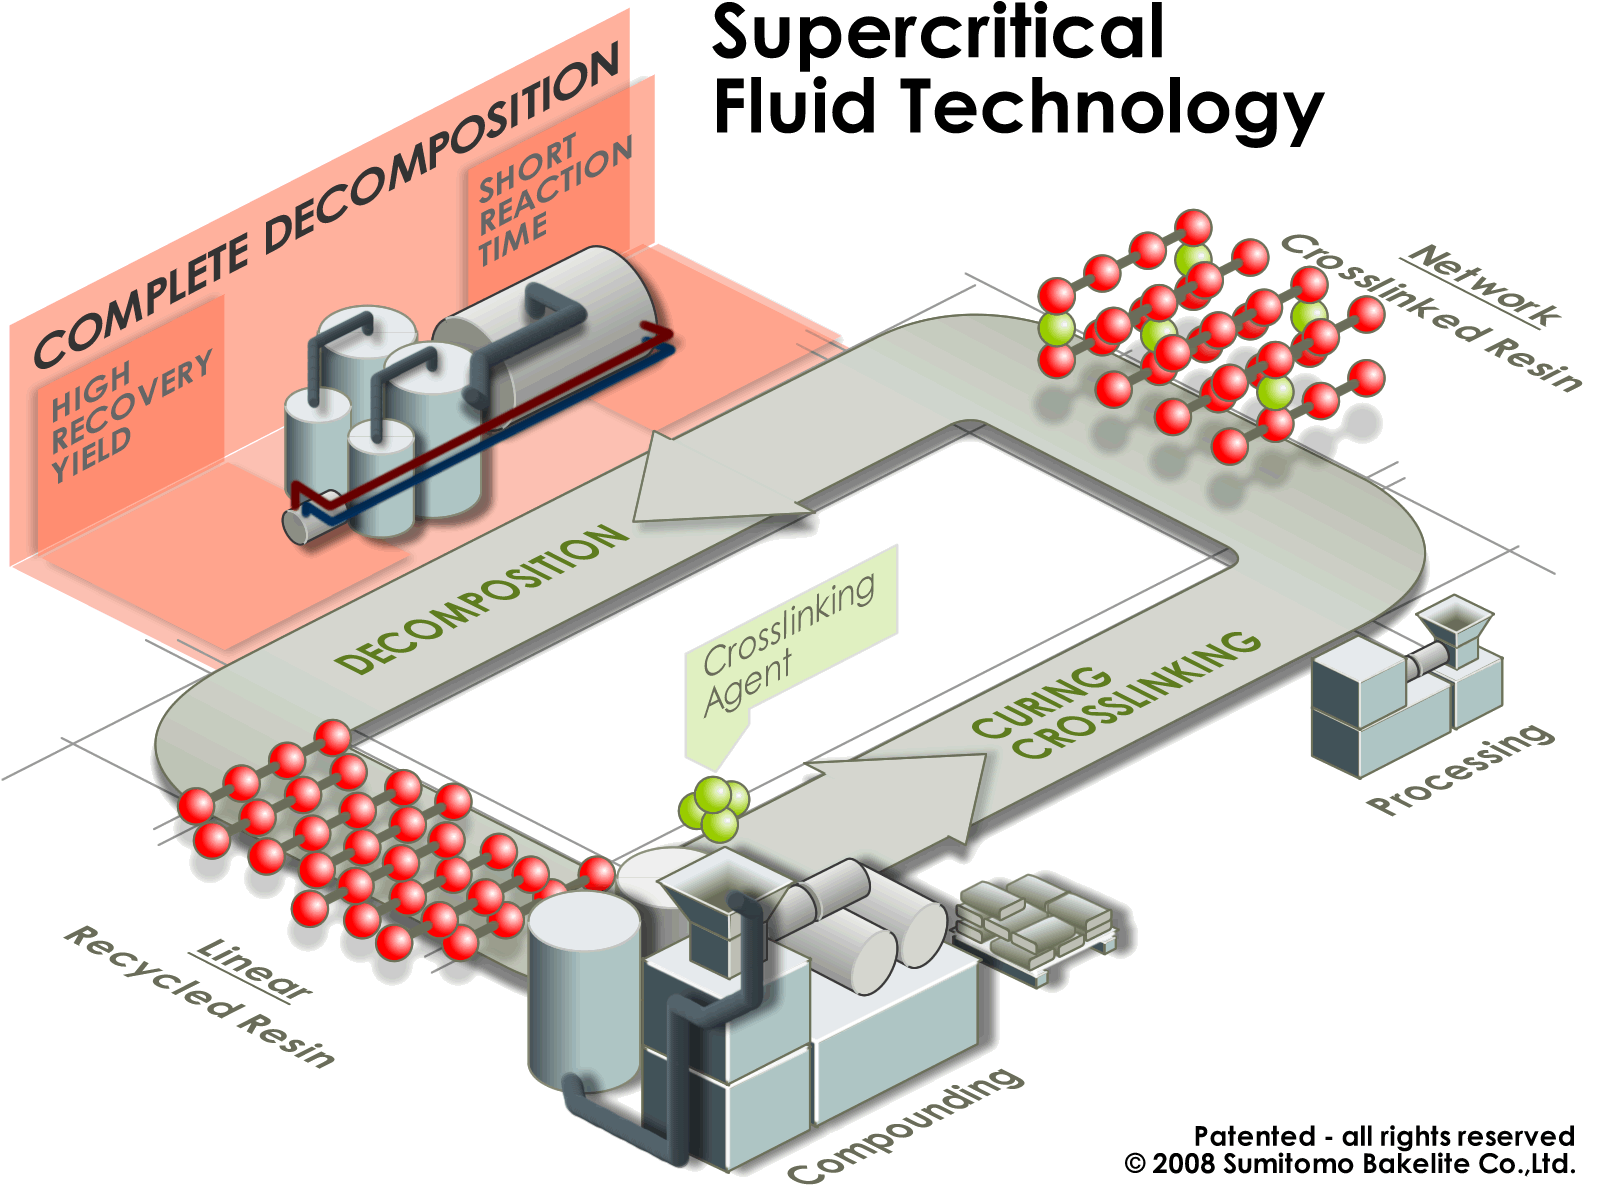 img_sbhpp_s_data_ChemRecycling.png